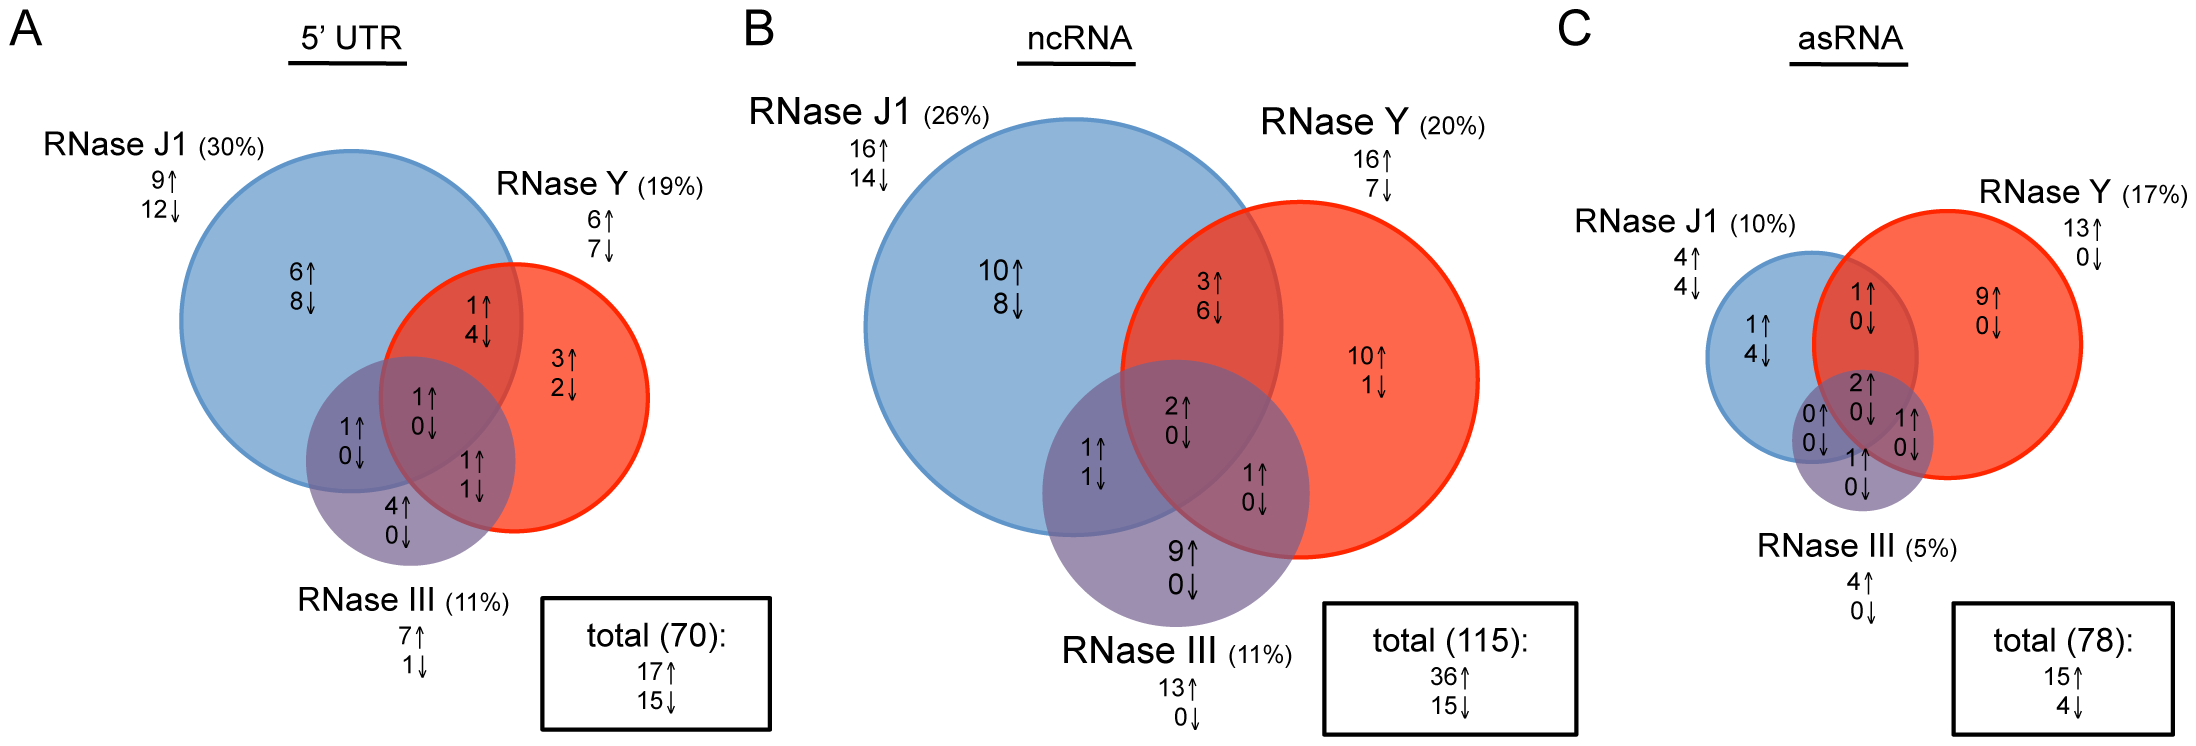 Effects of RNase J1, Y, and III depletion on abundance of <i>B. subtilis</i> regulatory RNAs.